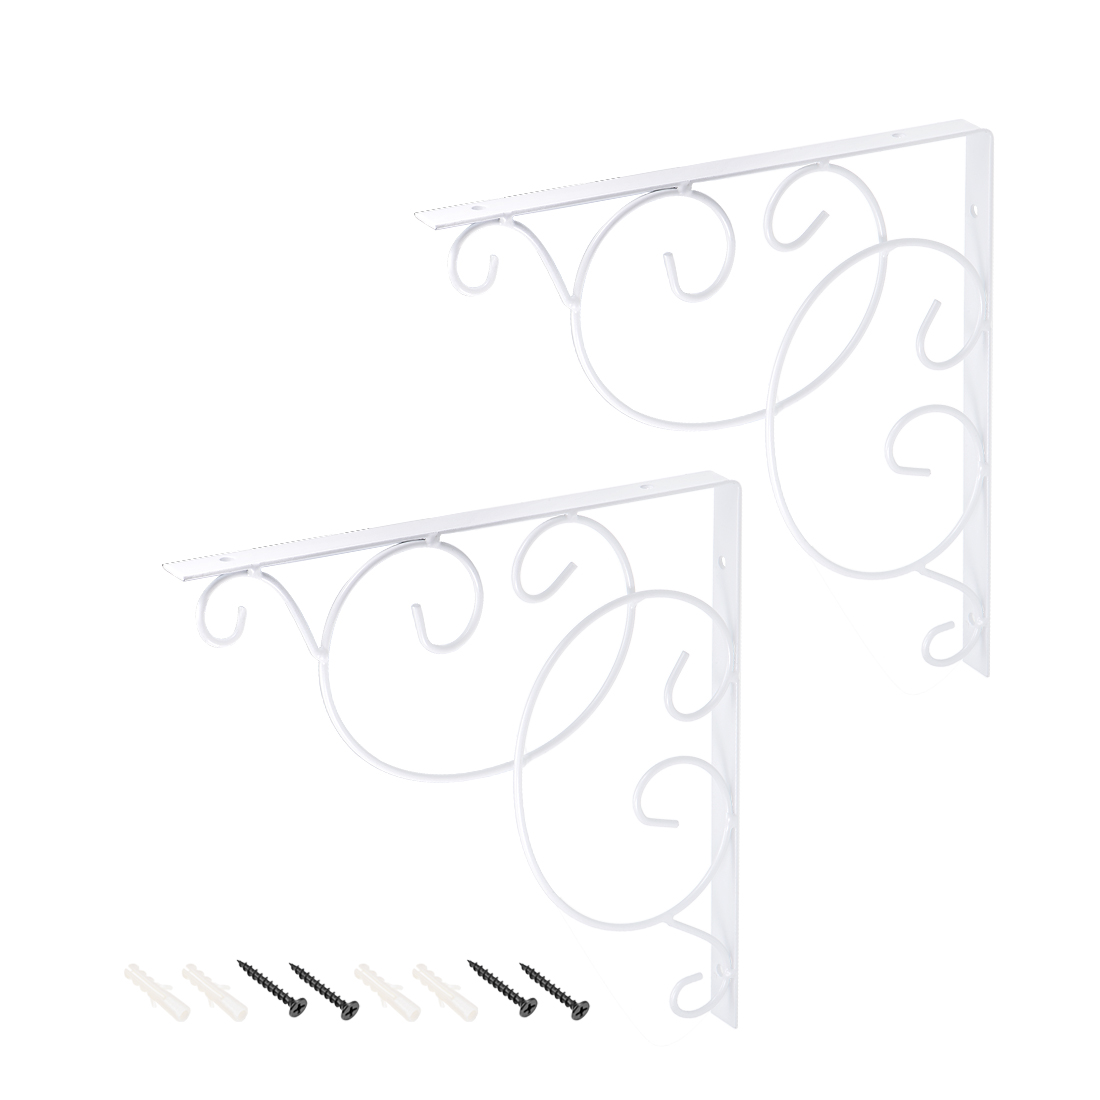 Shelf Bracket 250lbs Heavy-Duty 10-inch x 10-inch Floral Angle Brackets 2pcs